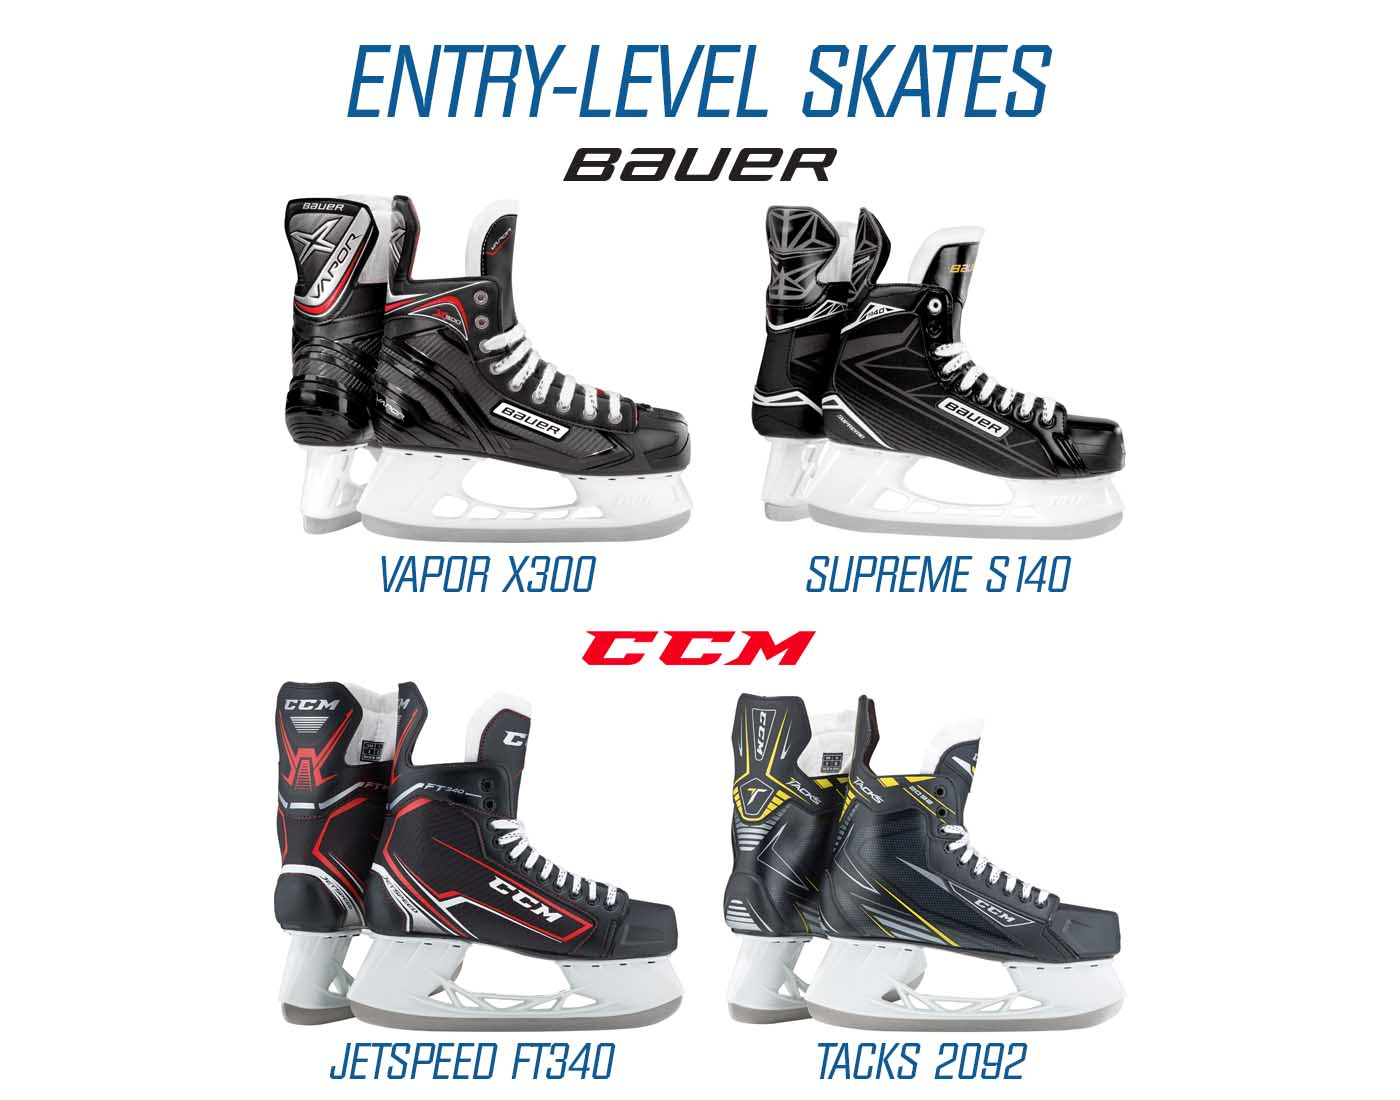 4d655cd1c79 Entry-level skates will be the cheapest skates in the line and will have  the most basic features. The quarter package